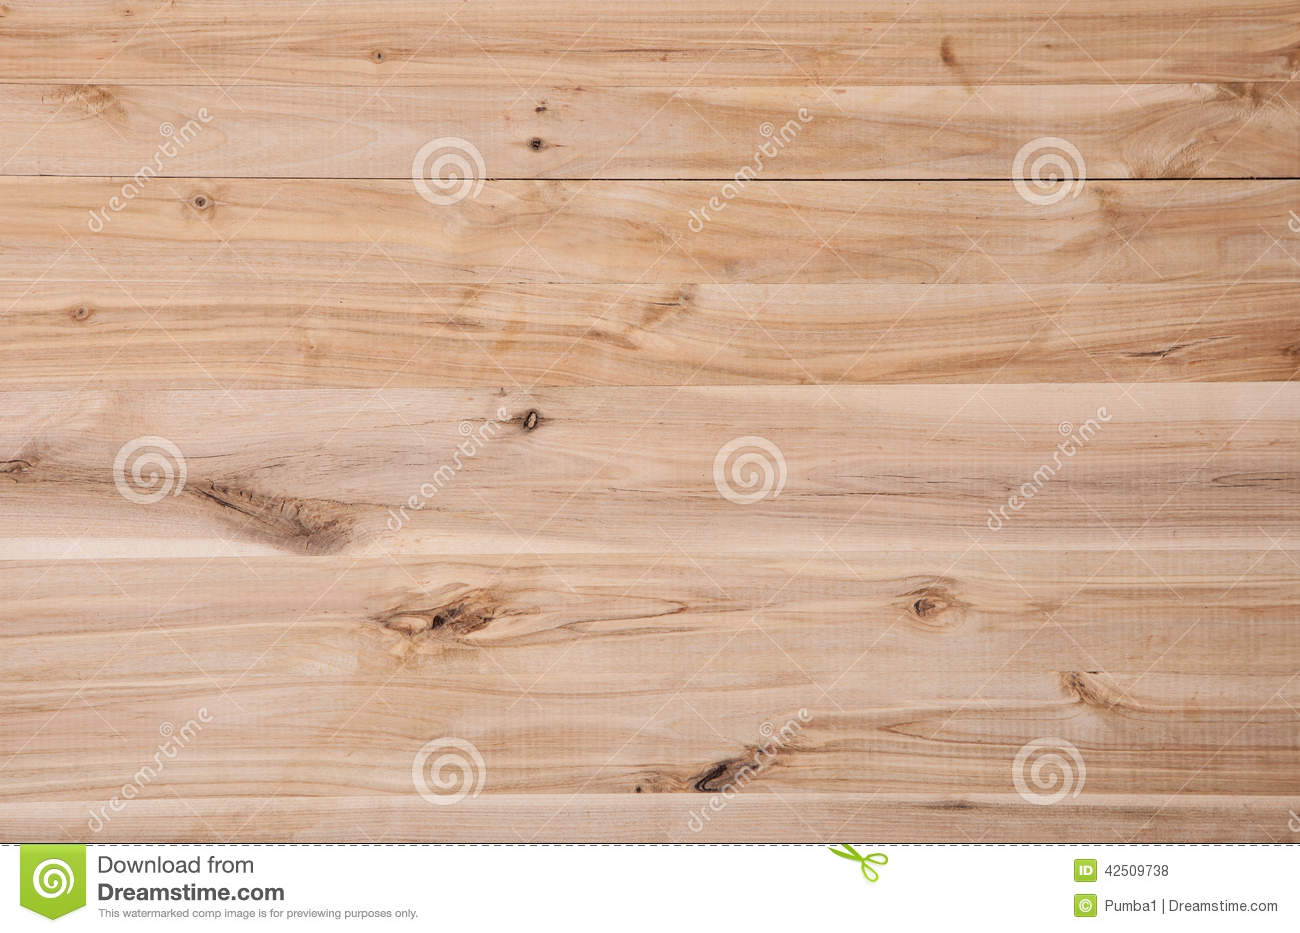 Texture of pine wood background